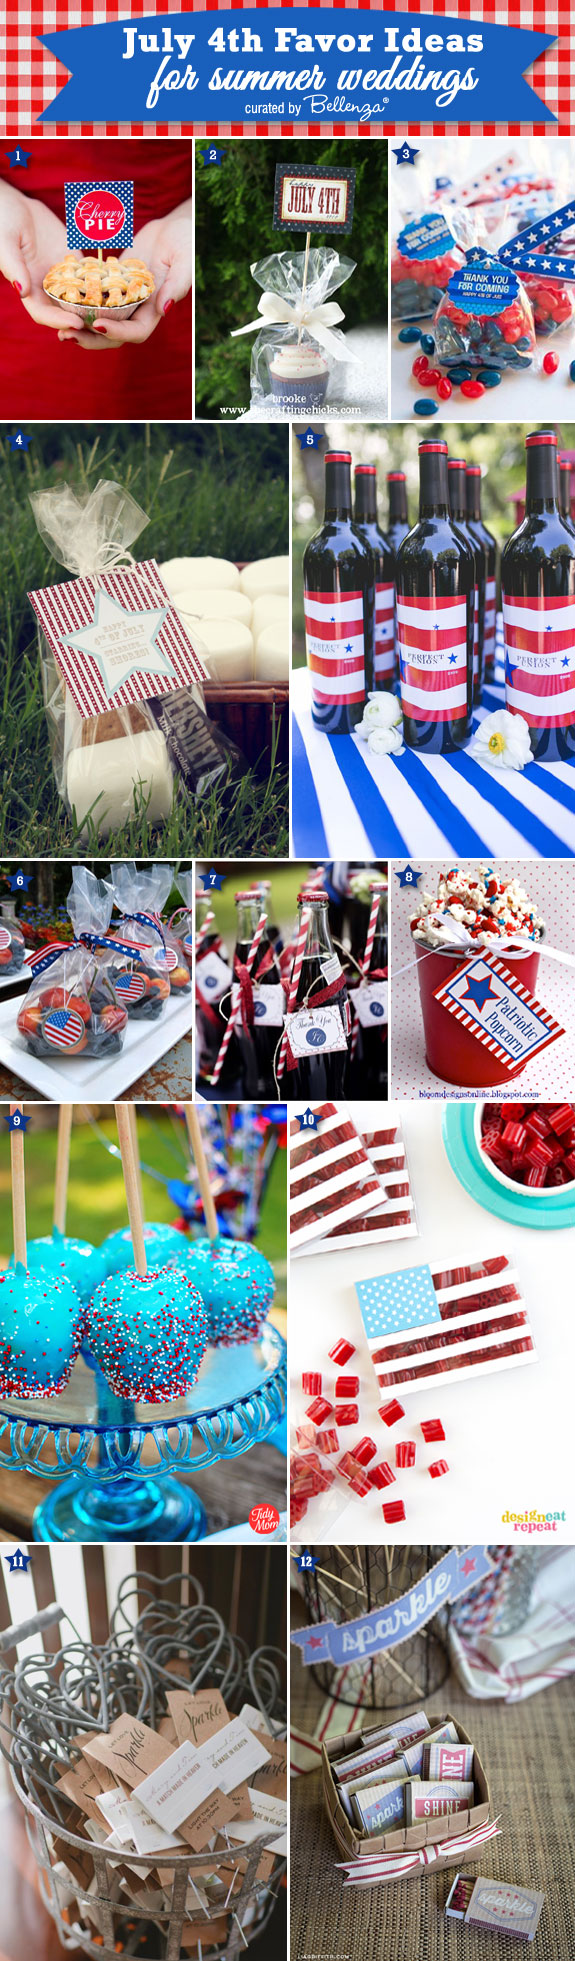 12 Favor Ideas for July 4th Weddings! #july4weddingfavors #july4partyfavors